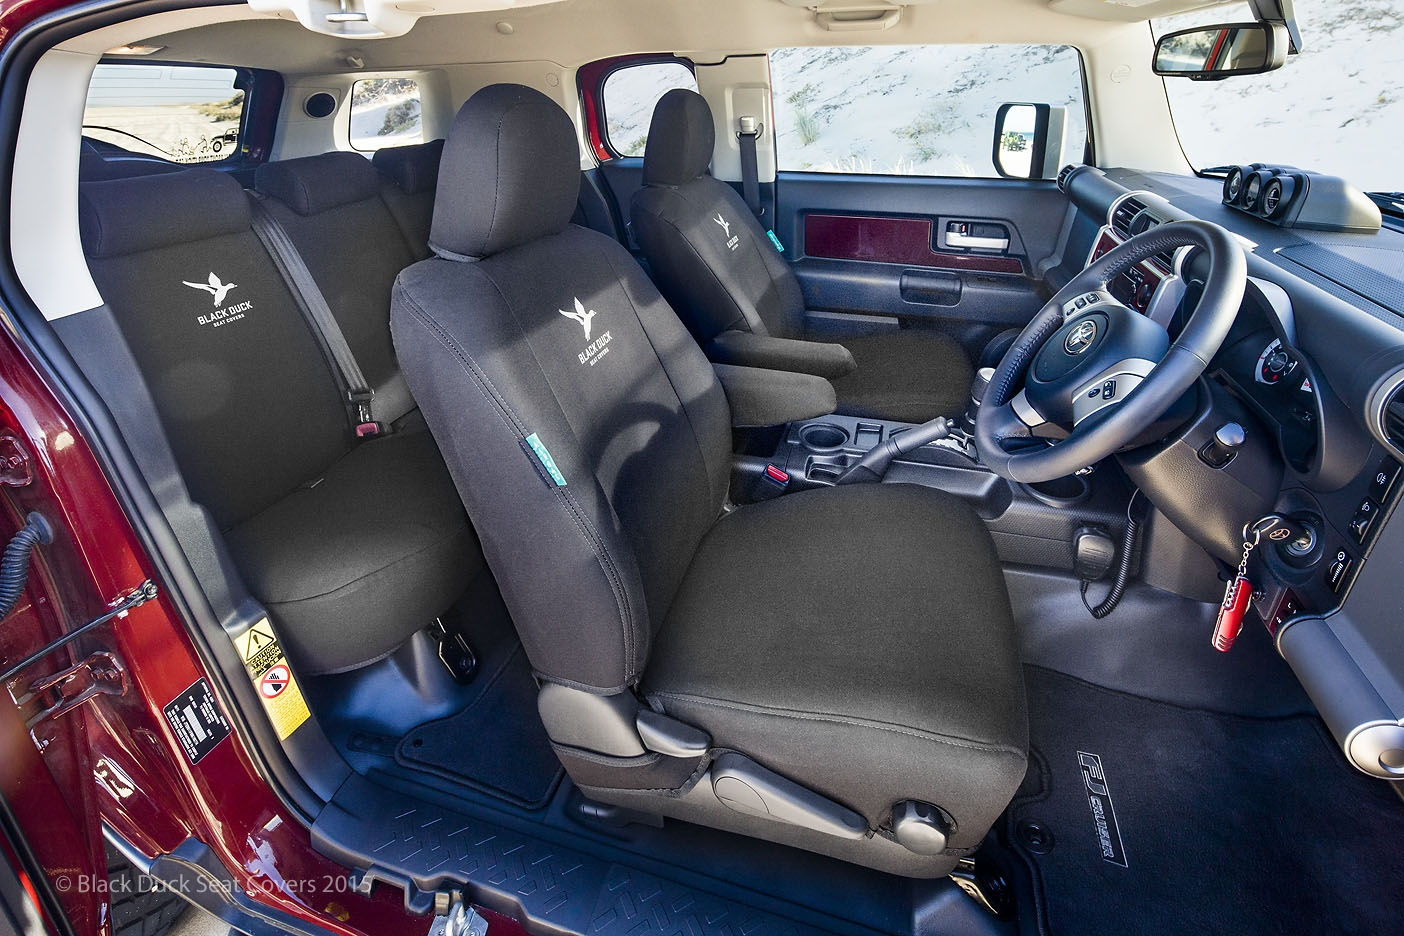 Black Duck Seat Covers Suitable For Toyota Fj Cruiser 2011